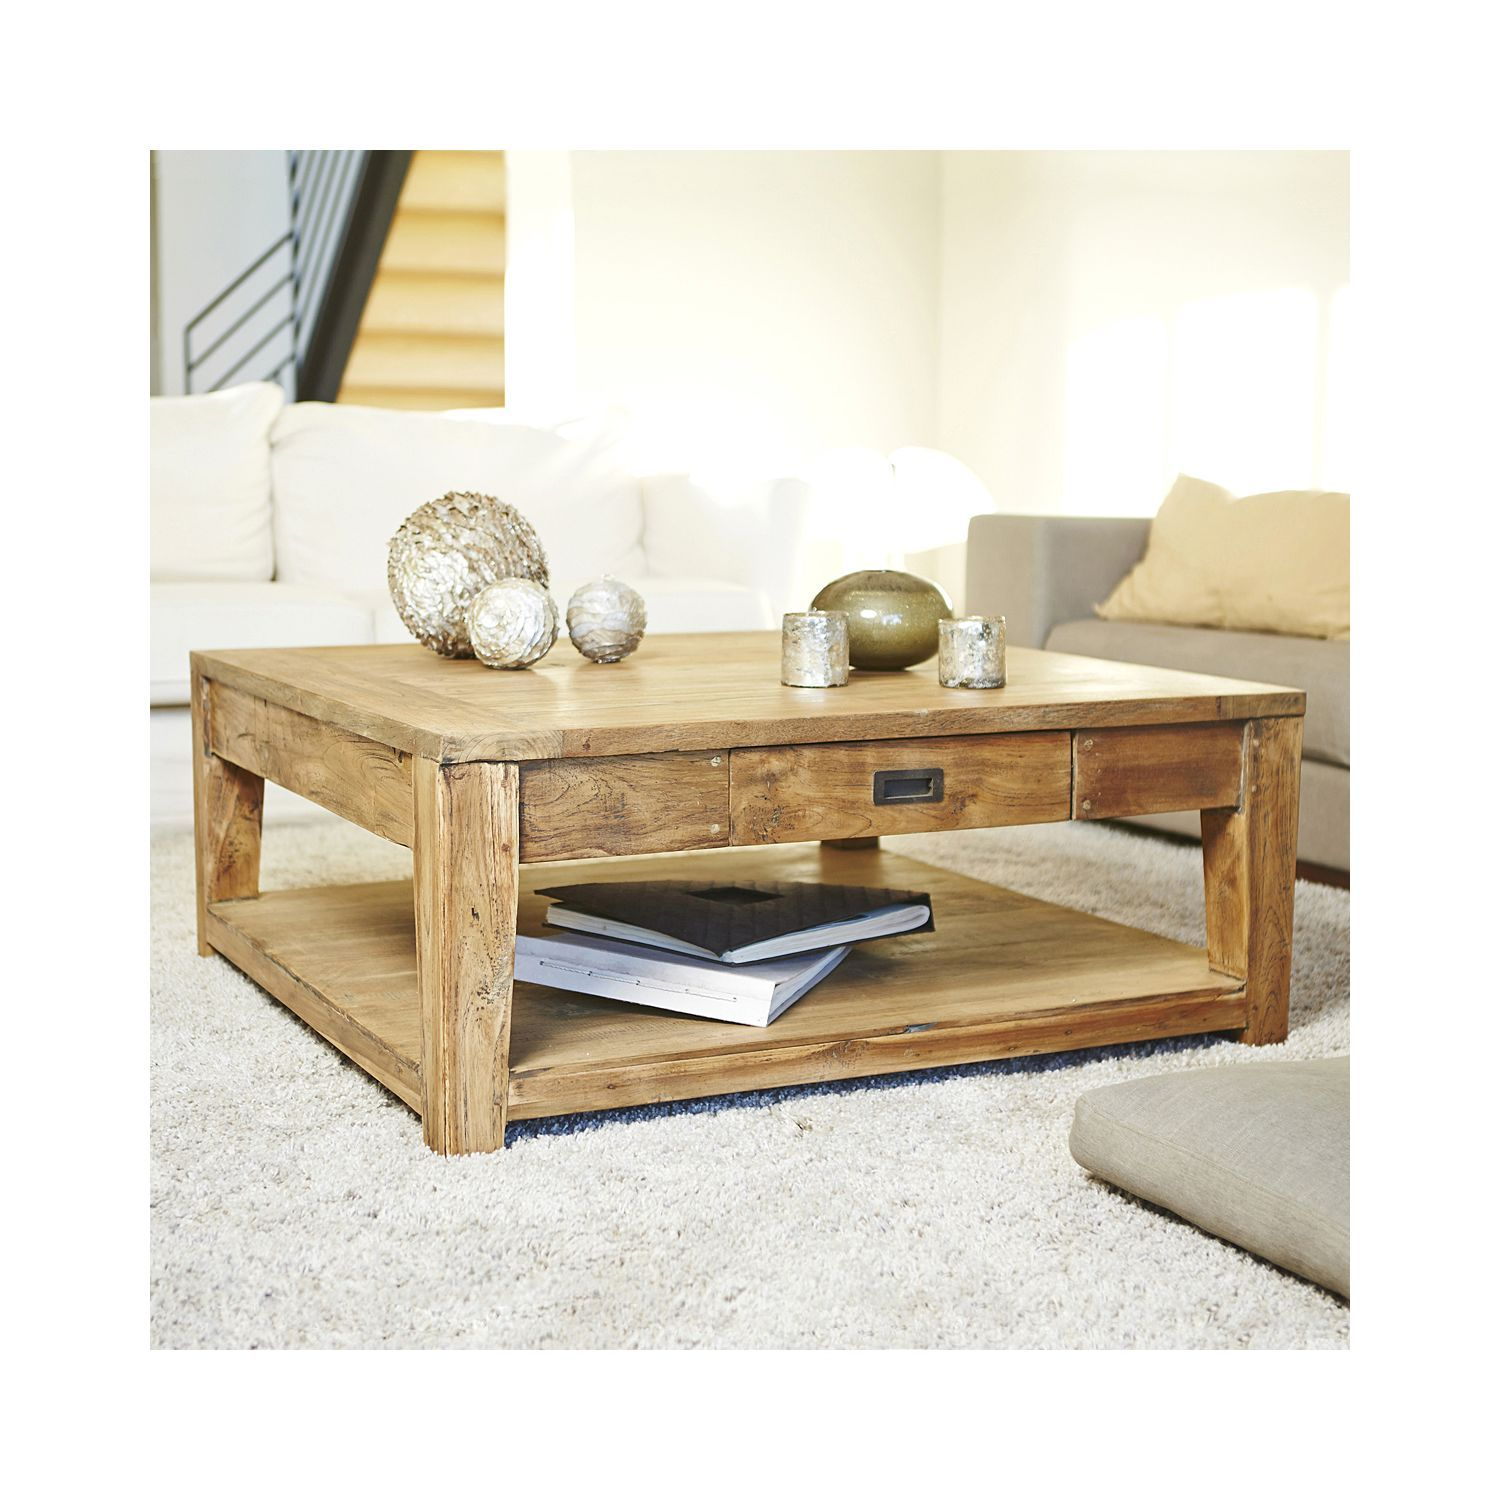 Garden And Co Table Basse Carree Teck Recycle 100cm Naturel 42 Pas Cher Achat X2f Vente Tables Basses Table Basse Carree Table Basse Table Basse Bois